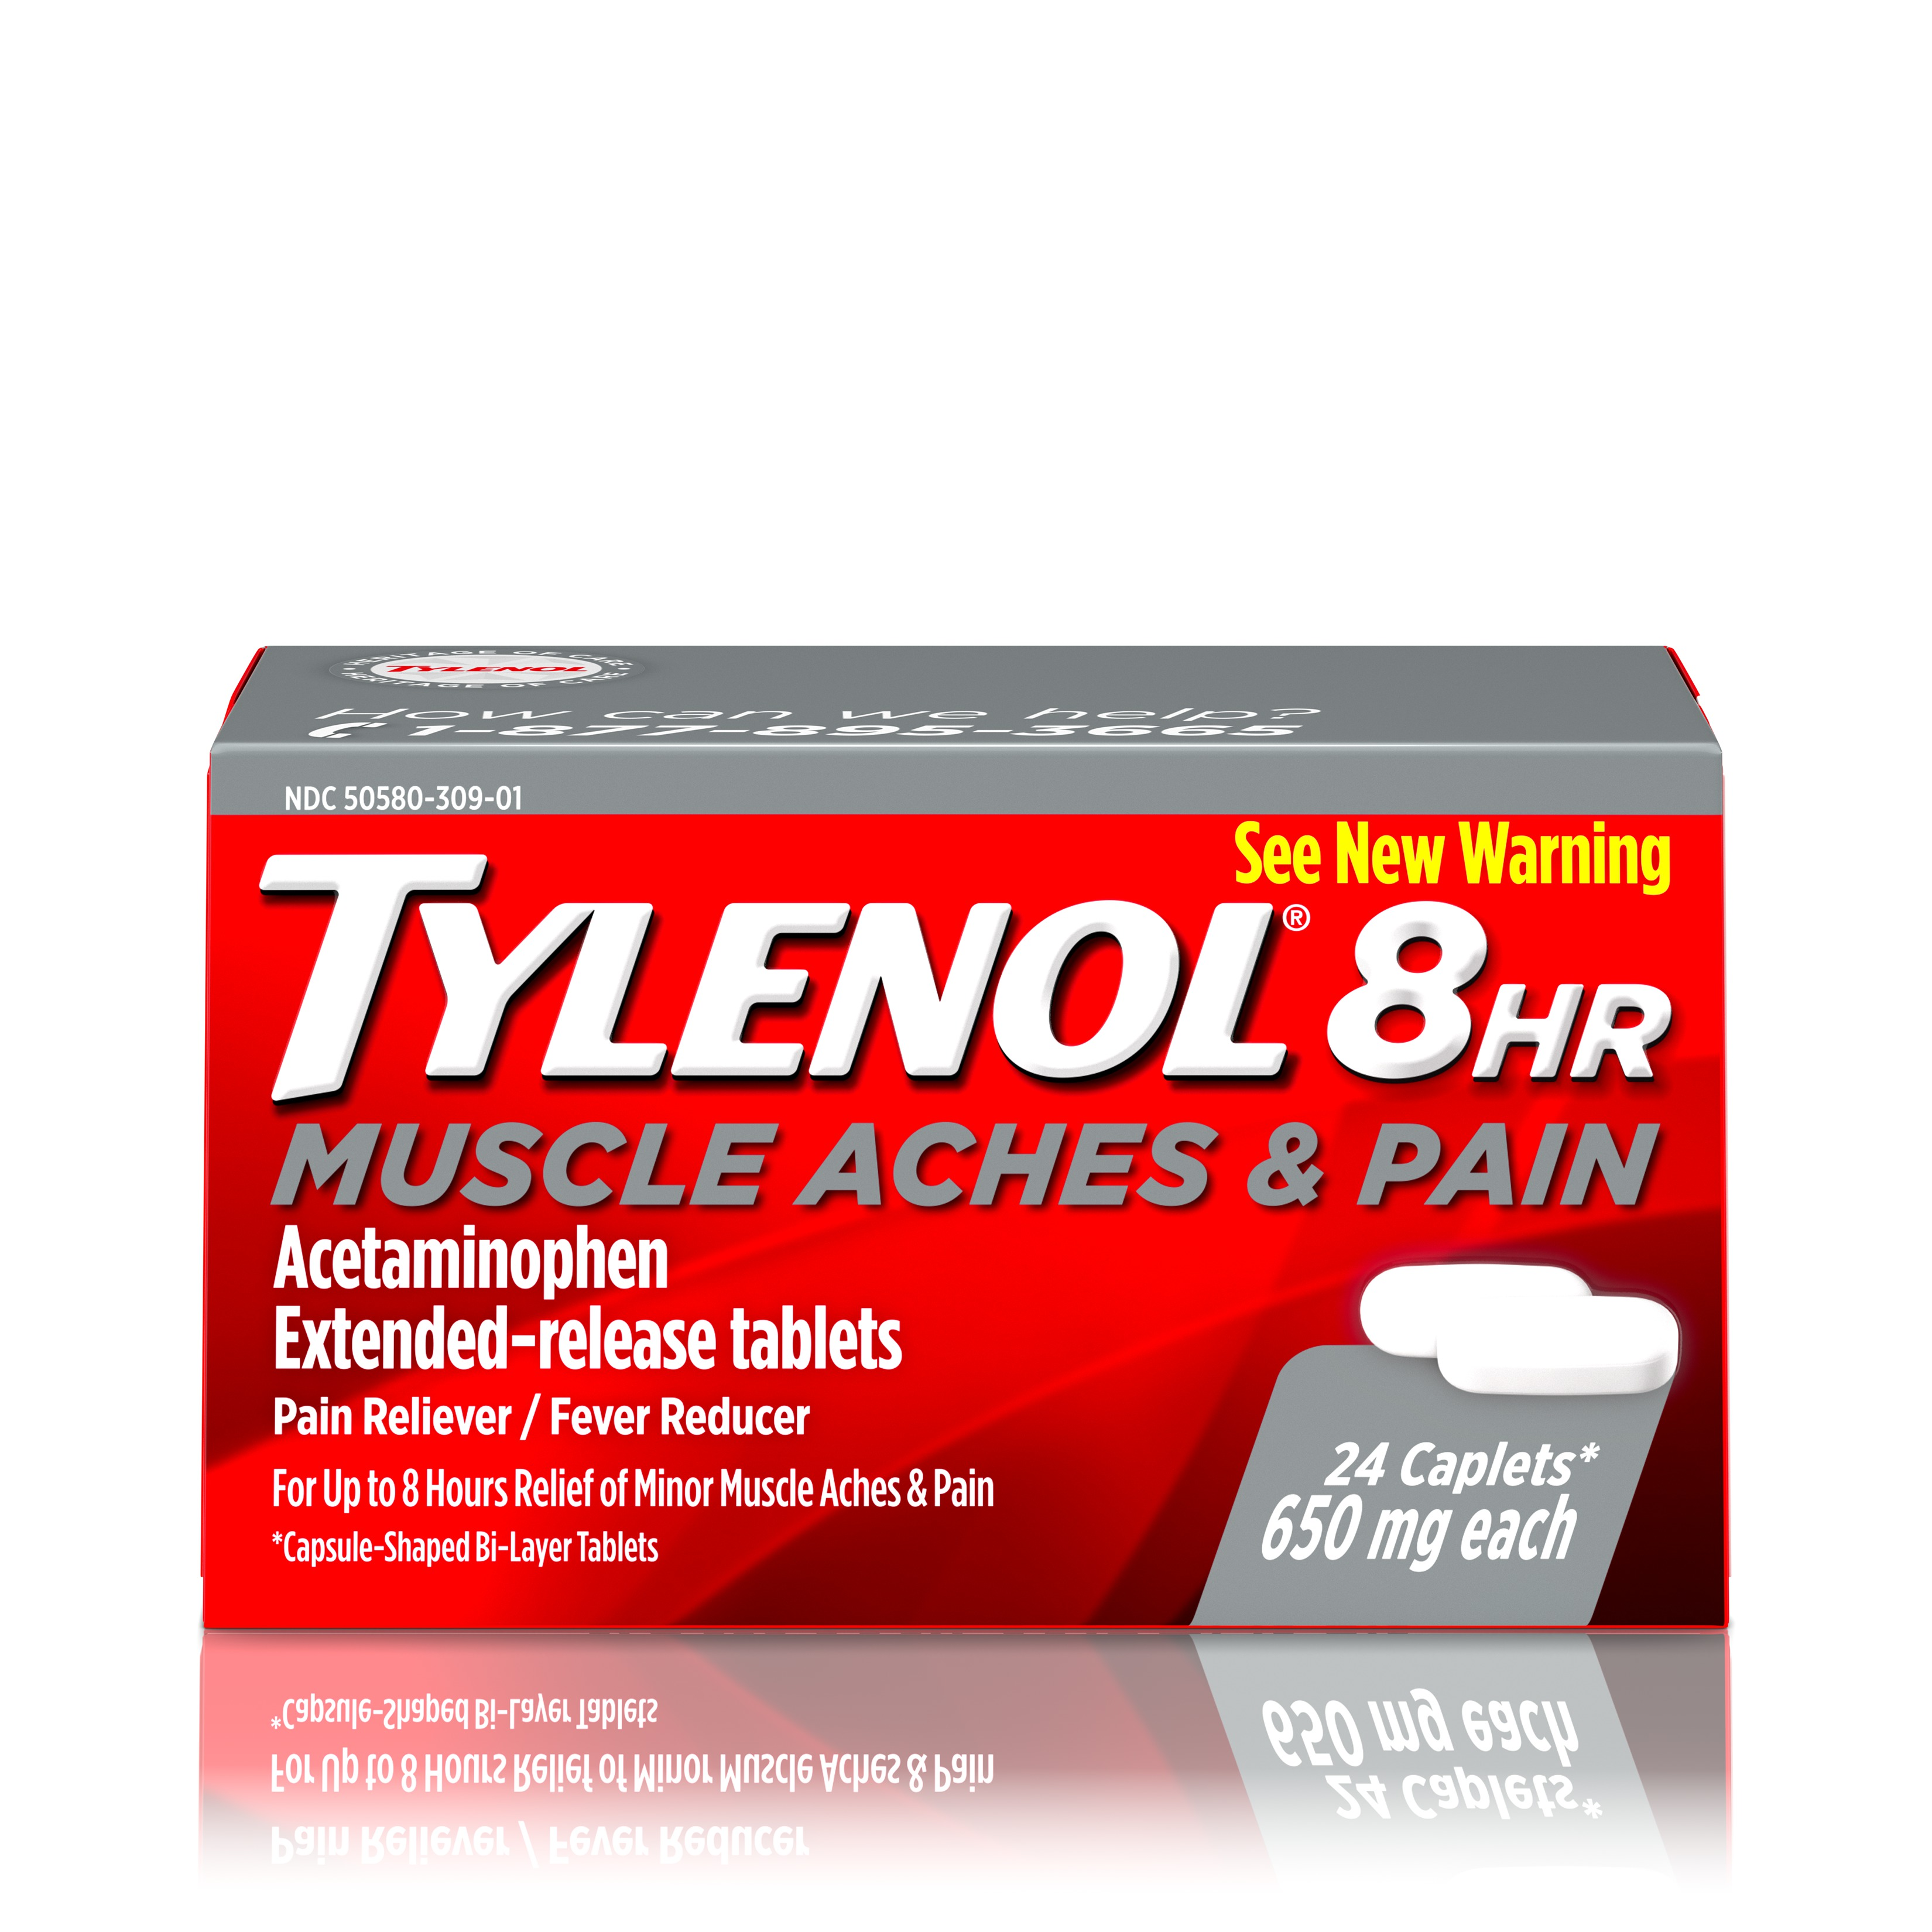 TYLENOL® 8 HR Muscle Aches & Pain, Pain Relief from Aches and Pain, 650 mg, 24 ct.